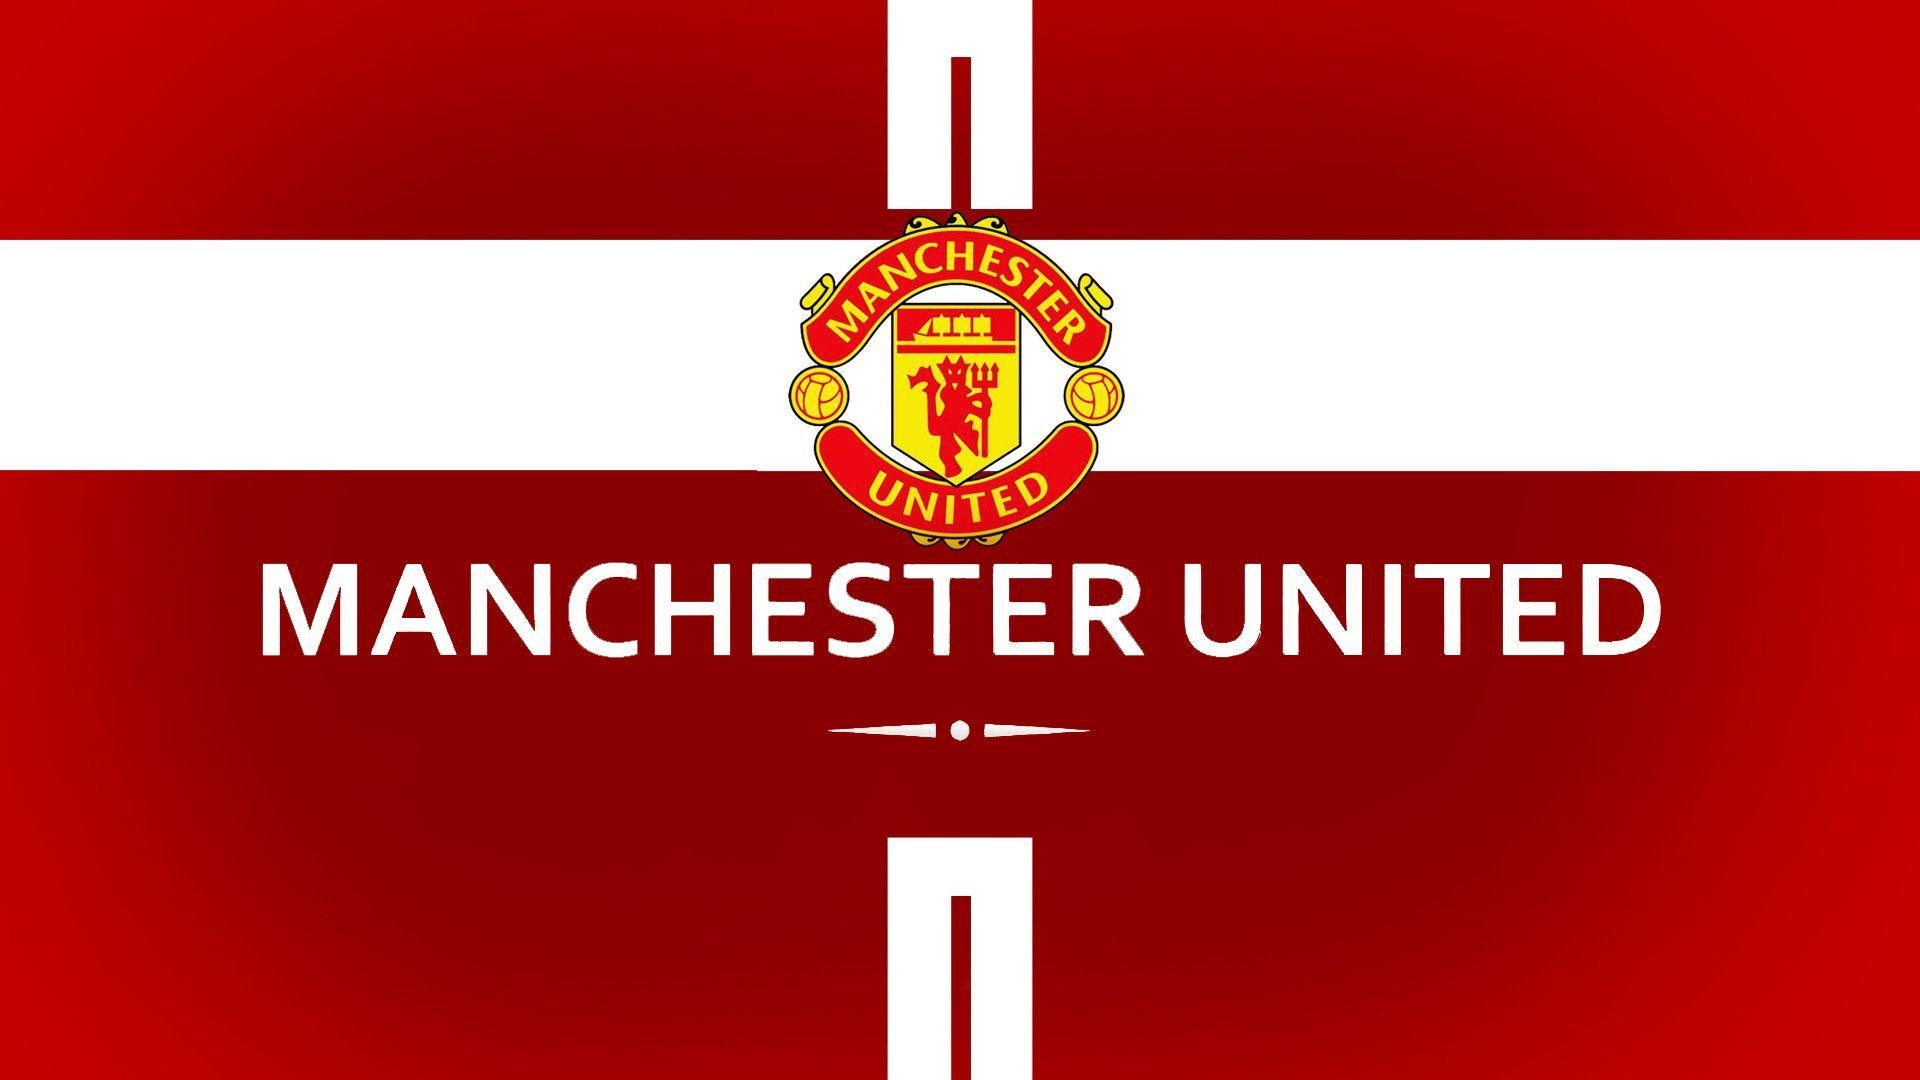 Manchester united wallpapers 68 images 1920x1080 manchester united wallpapers hd wallpaper cave voltagebd Image collections